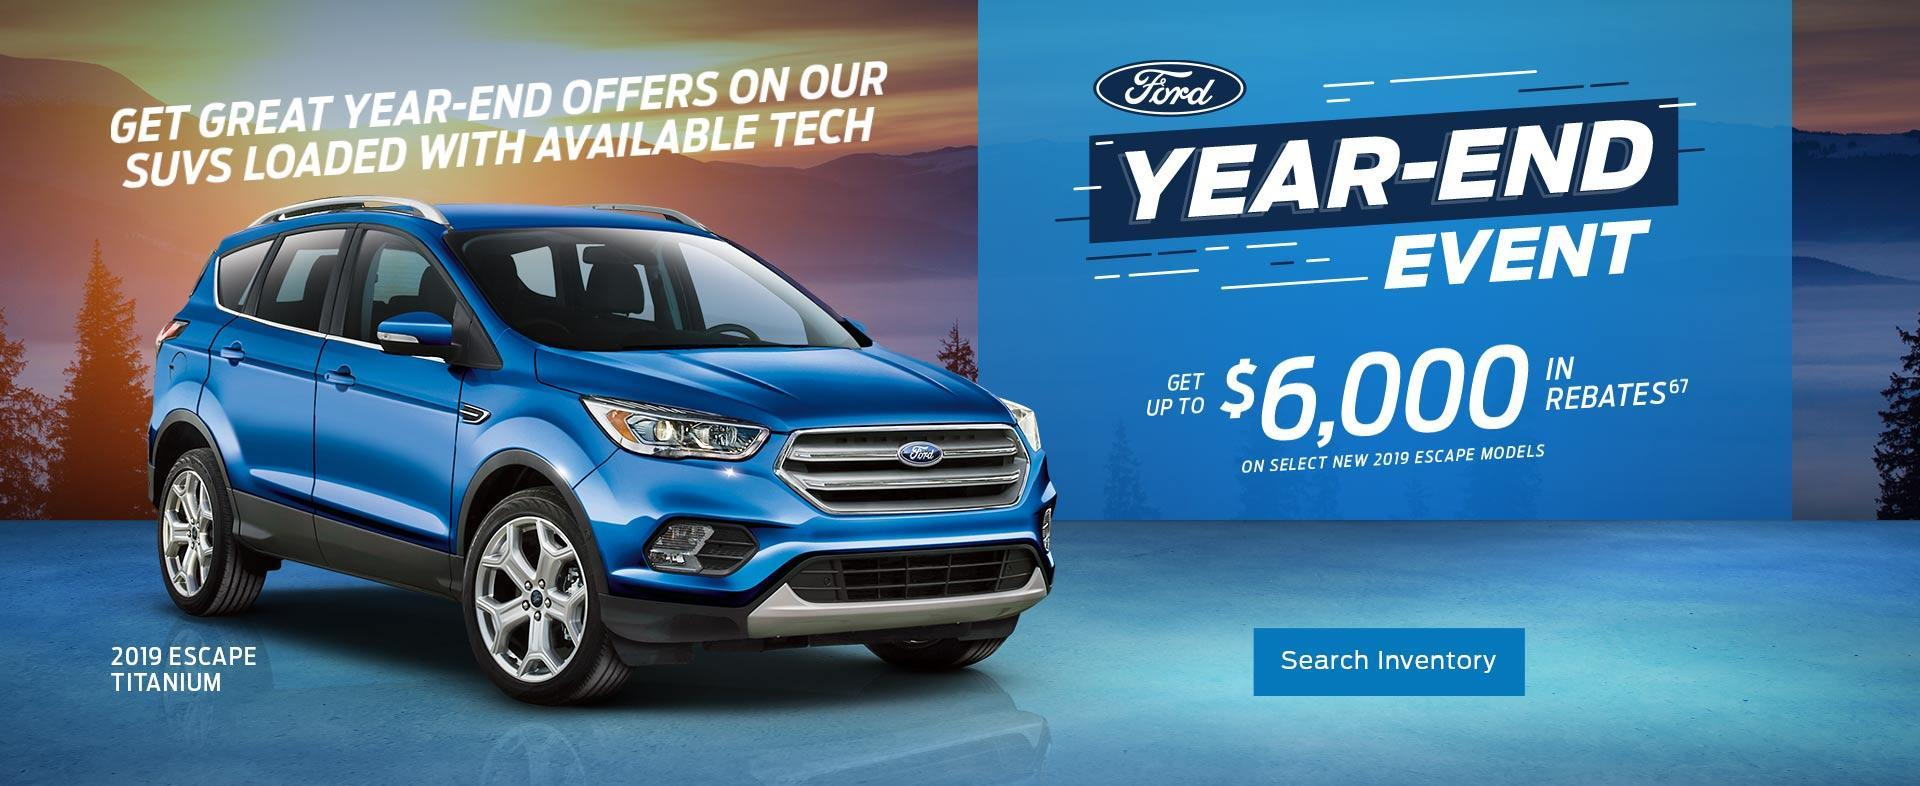 Ford SUVs Year End Event